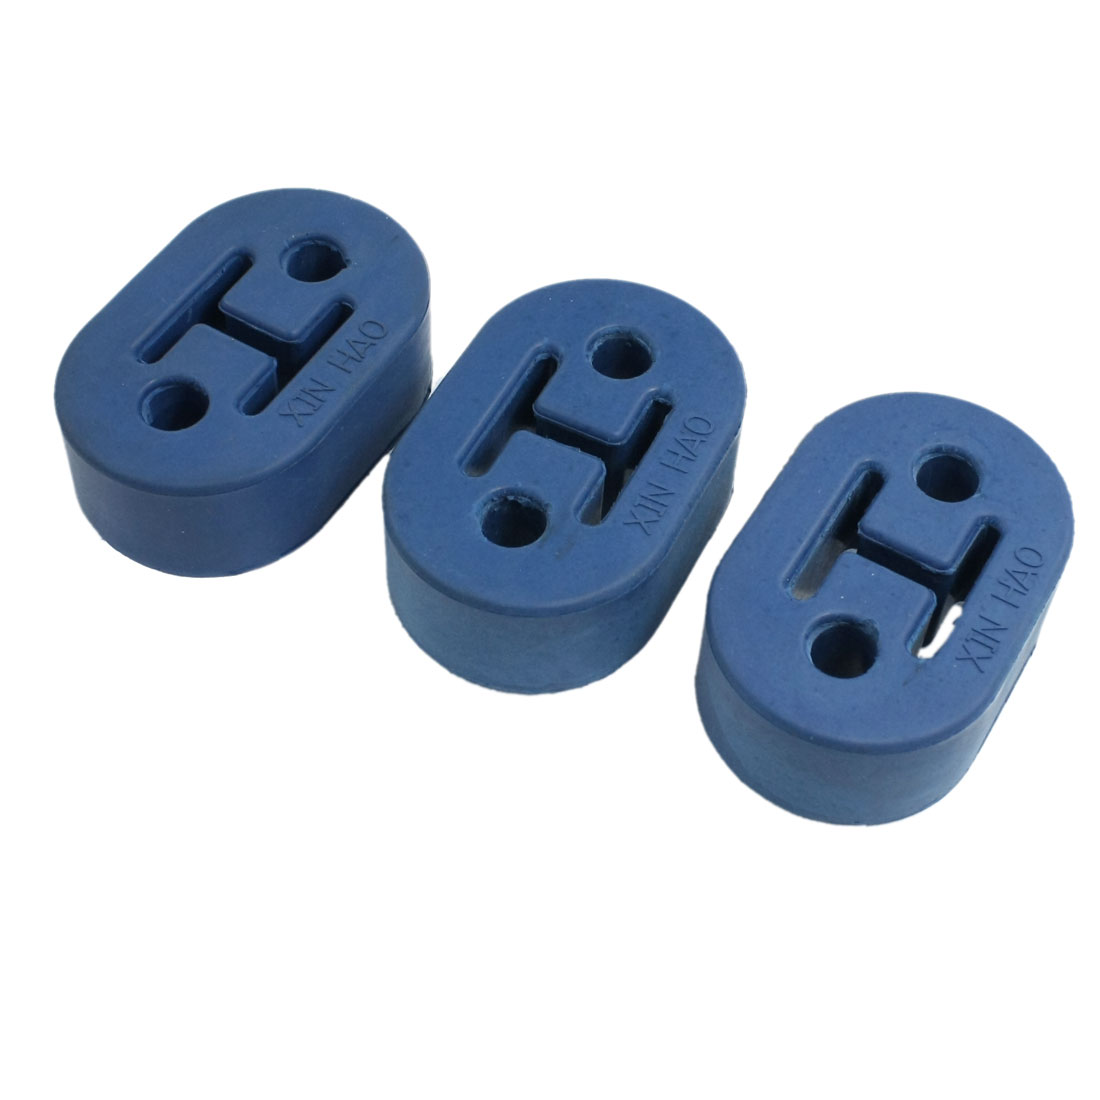 3 Pcs Double Holes Rubber Reinforced Muffler Exhaust Hanger Bushing